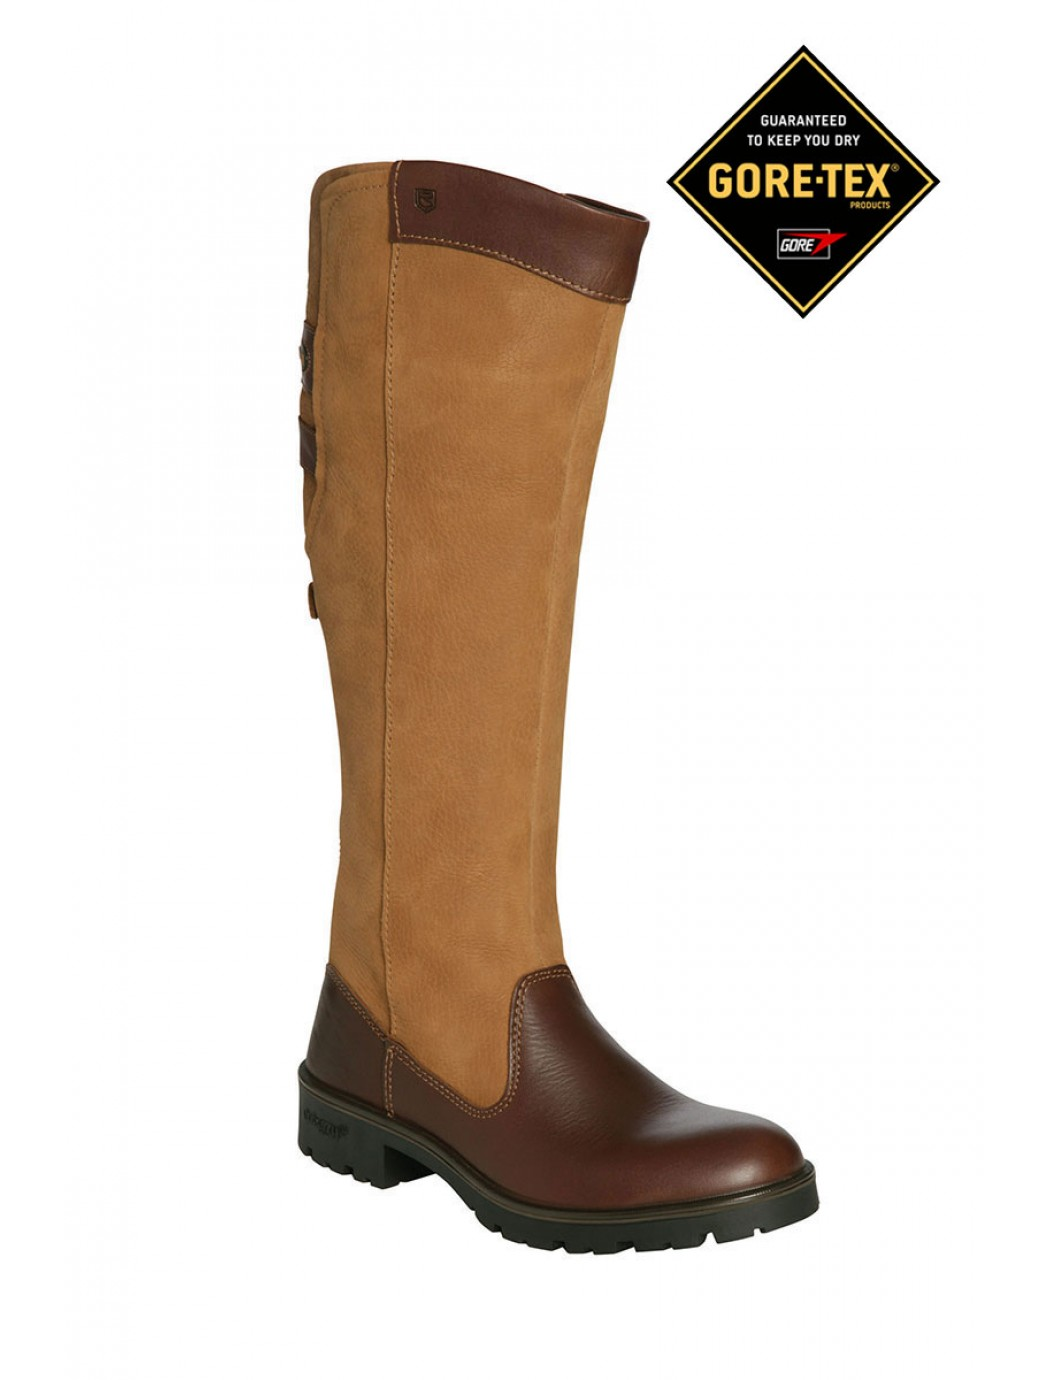 clare-country-boots-brown 2 copy